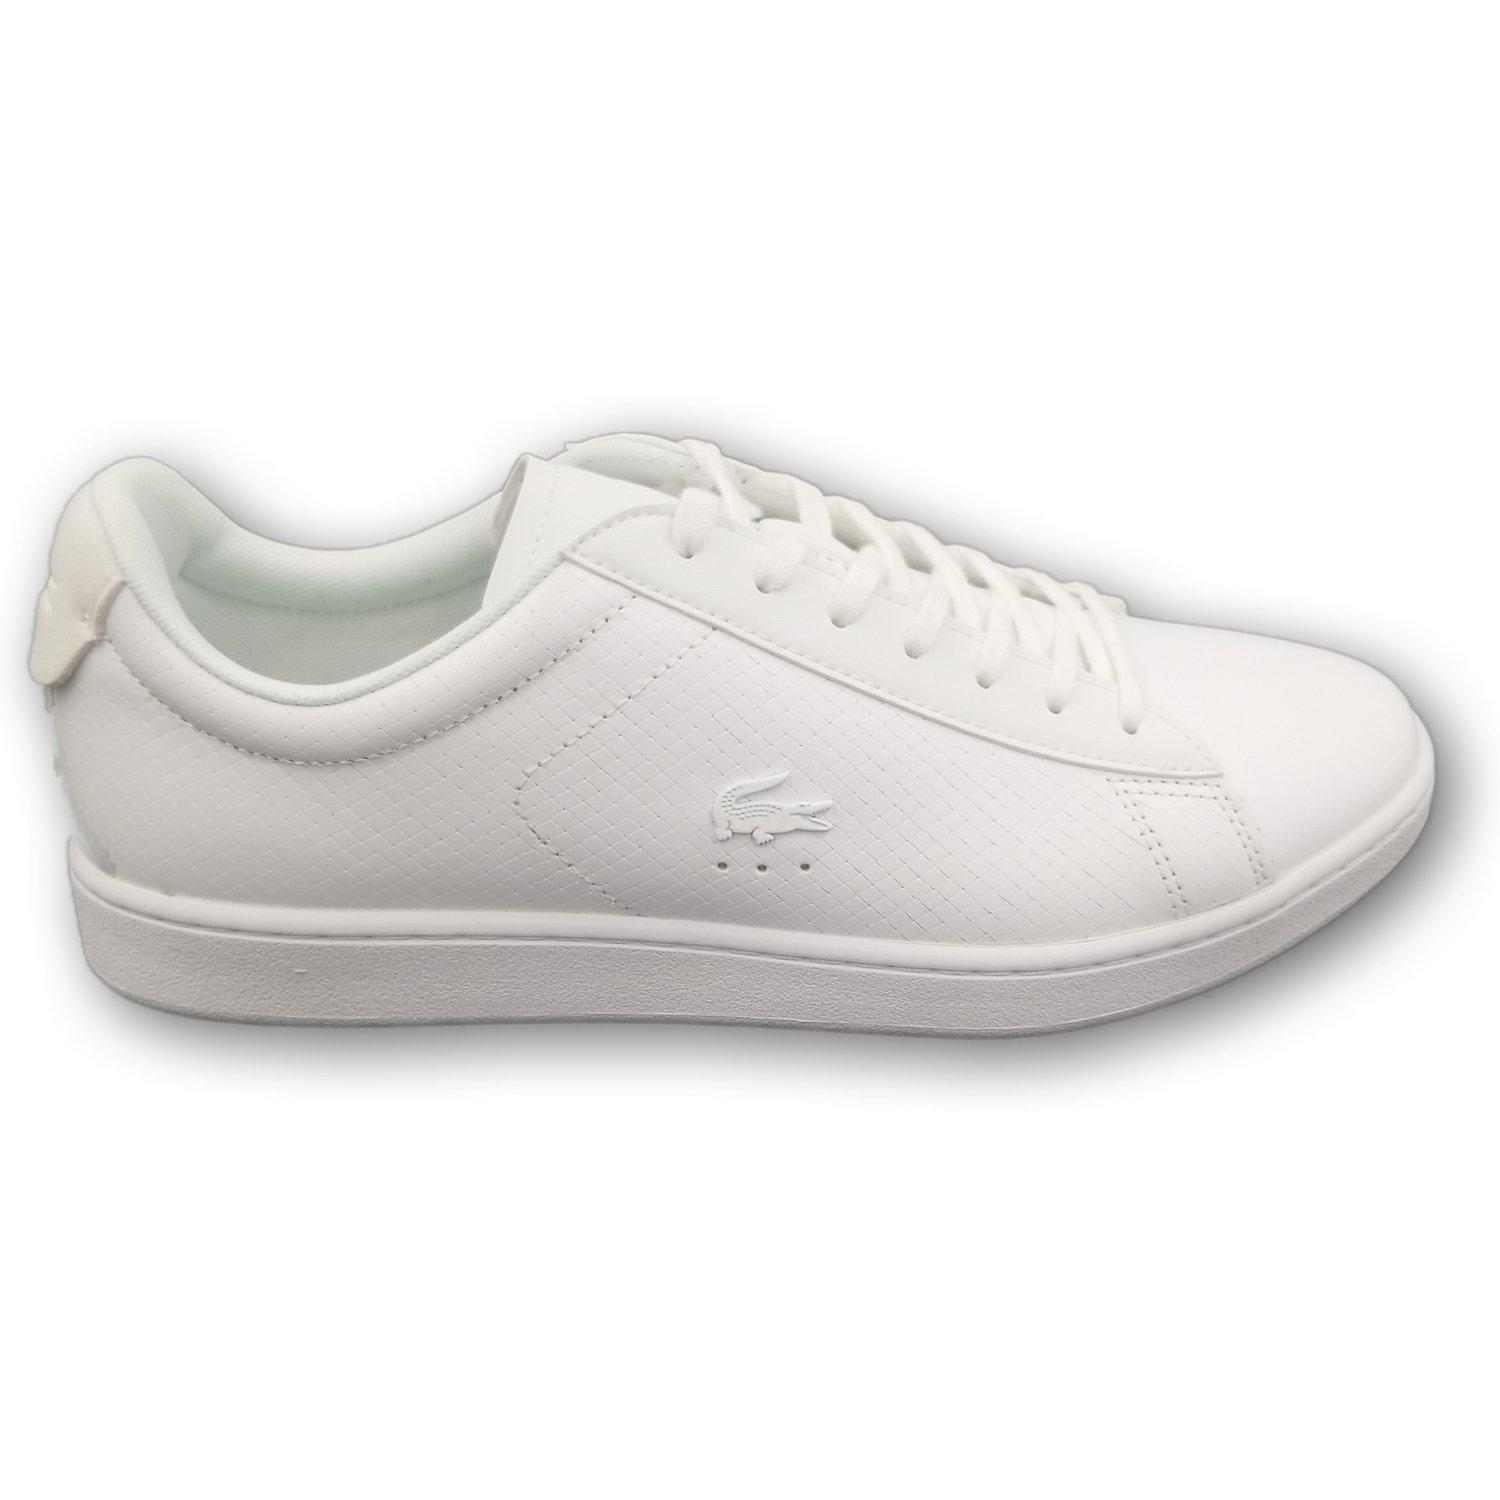 Lacoste Leather Carnaby Evo 318 7 in